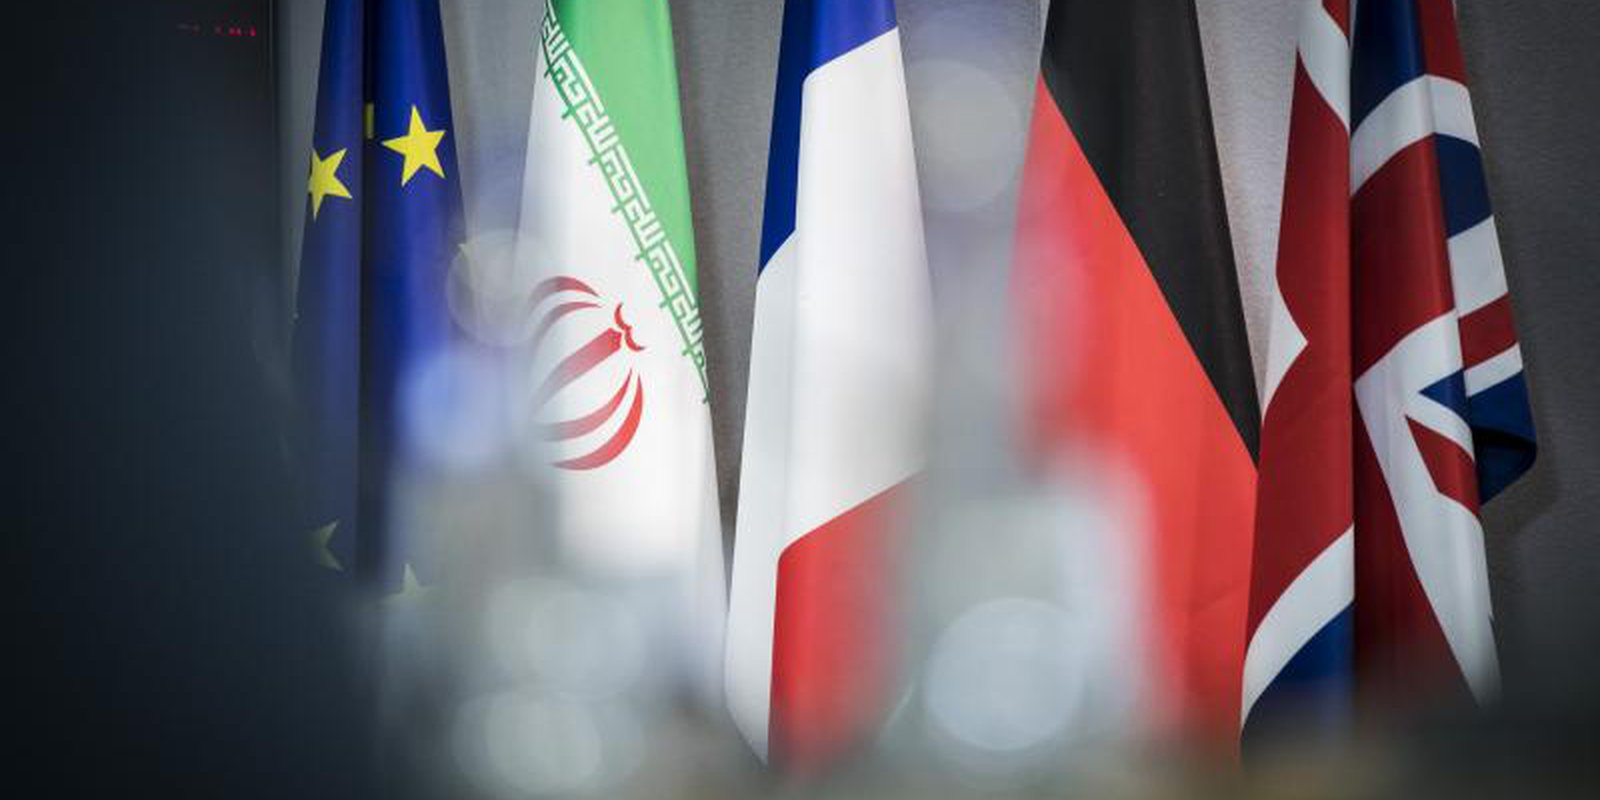 The flags of the EU, Iran, France, Germany and the UK are pictured before meetings on 15 May 2018 in Brussels, Belgium, in response to the US's announcement of its withdrawal from the Iran nuclear deal. Photo: Getty Images.